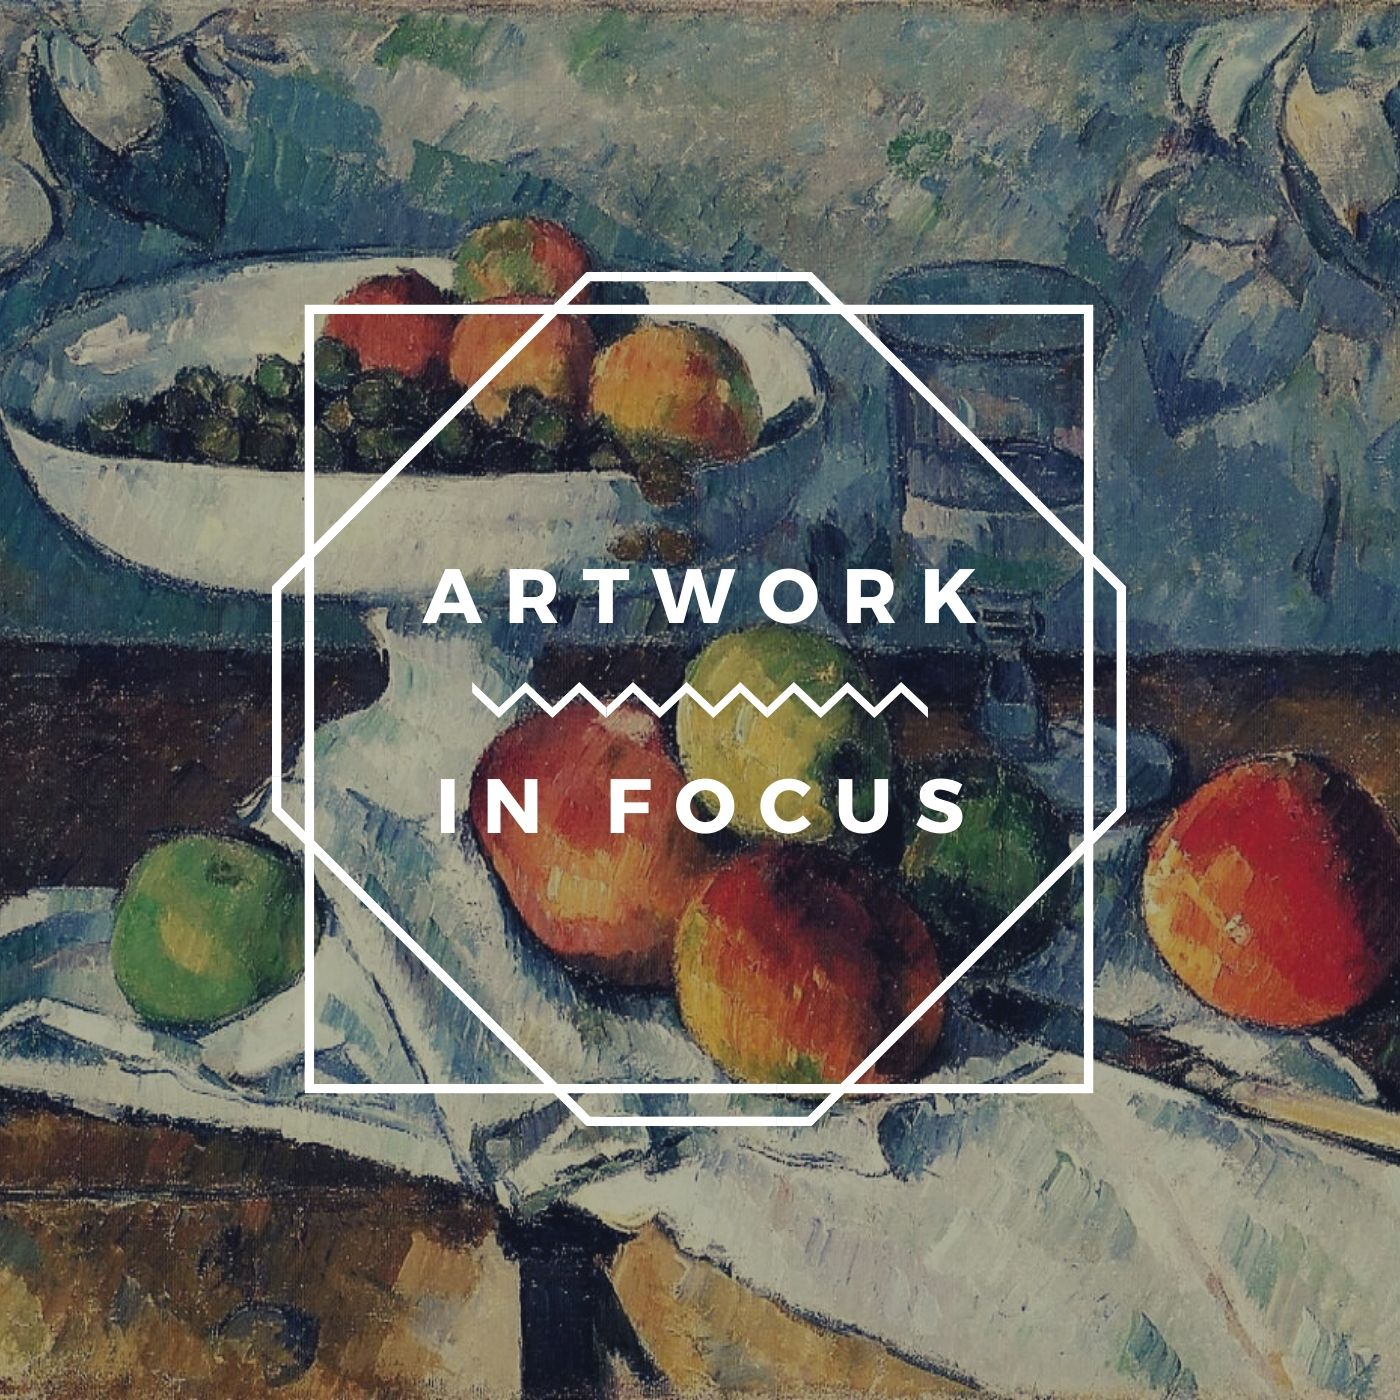 Artwork in Focus by Art From Us